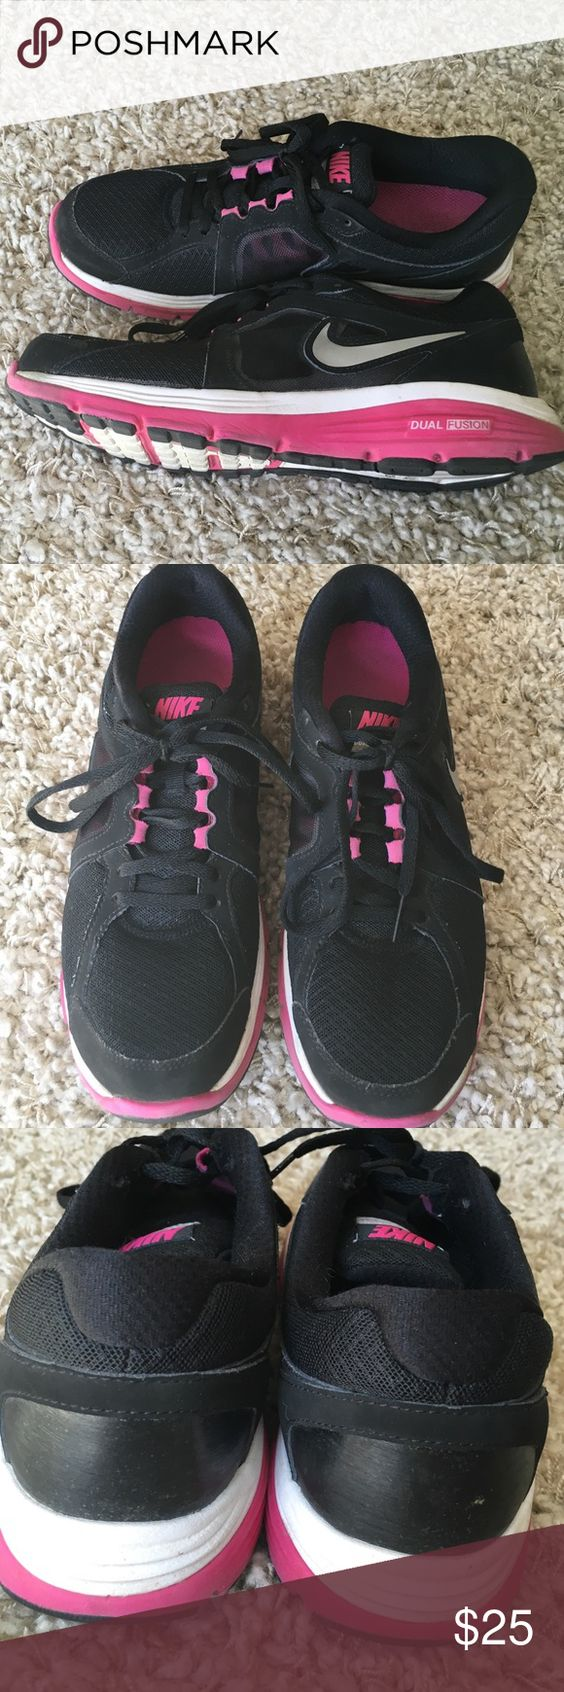 Nike Dual Fusion sneakers Size 9 black,pink & white in EUC hardly worn Nike Shoes Sneakers